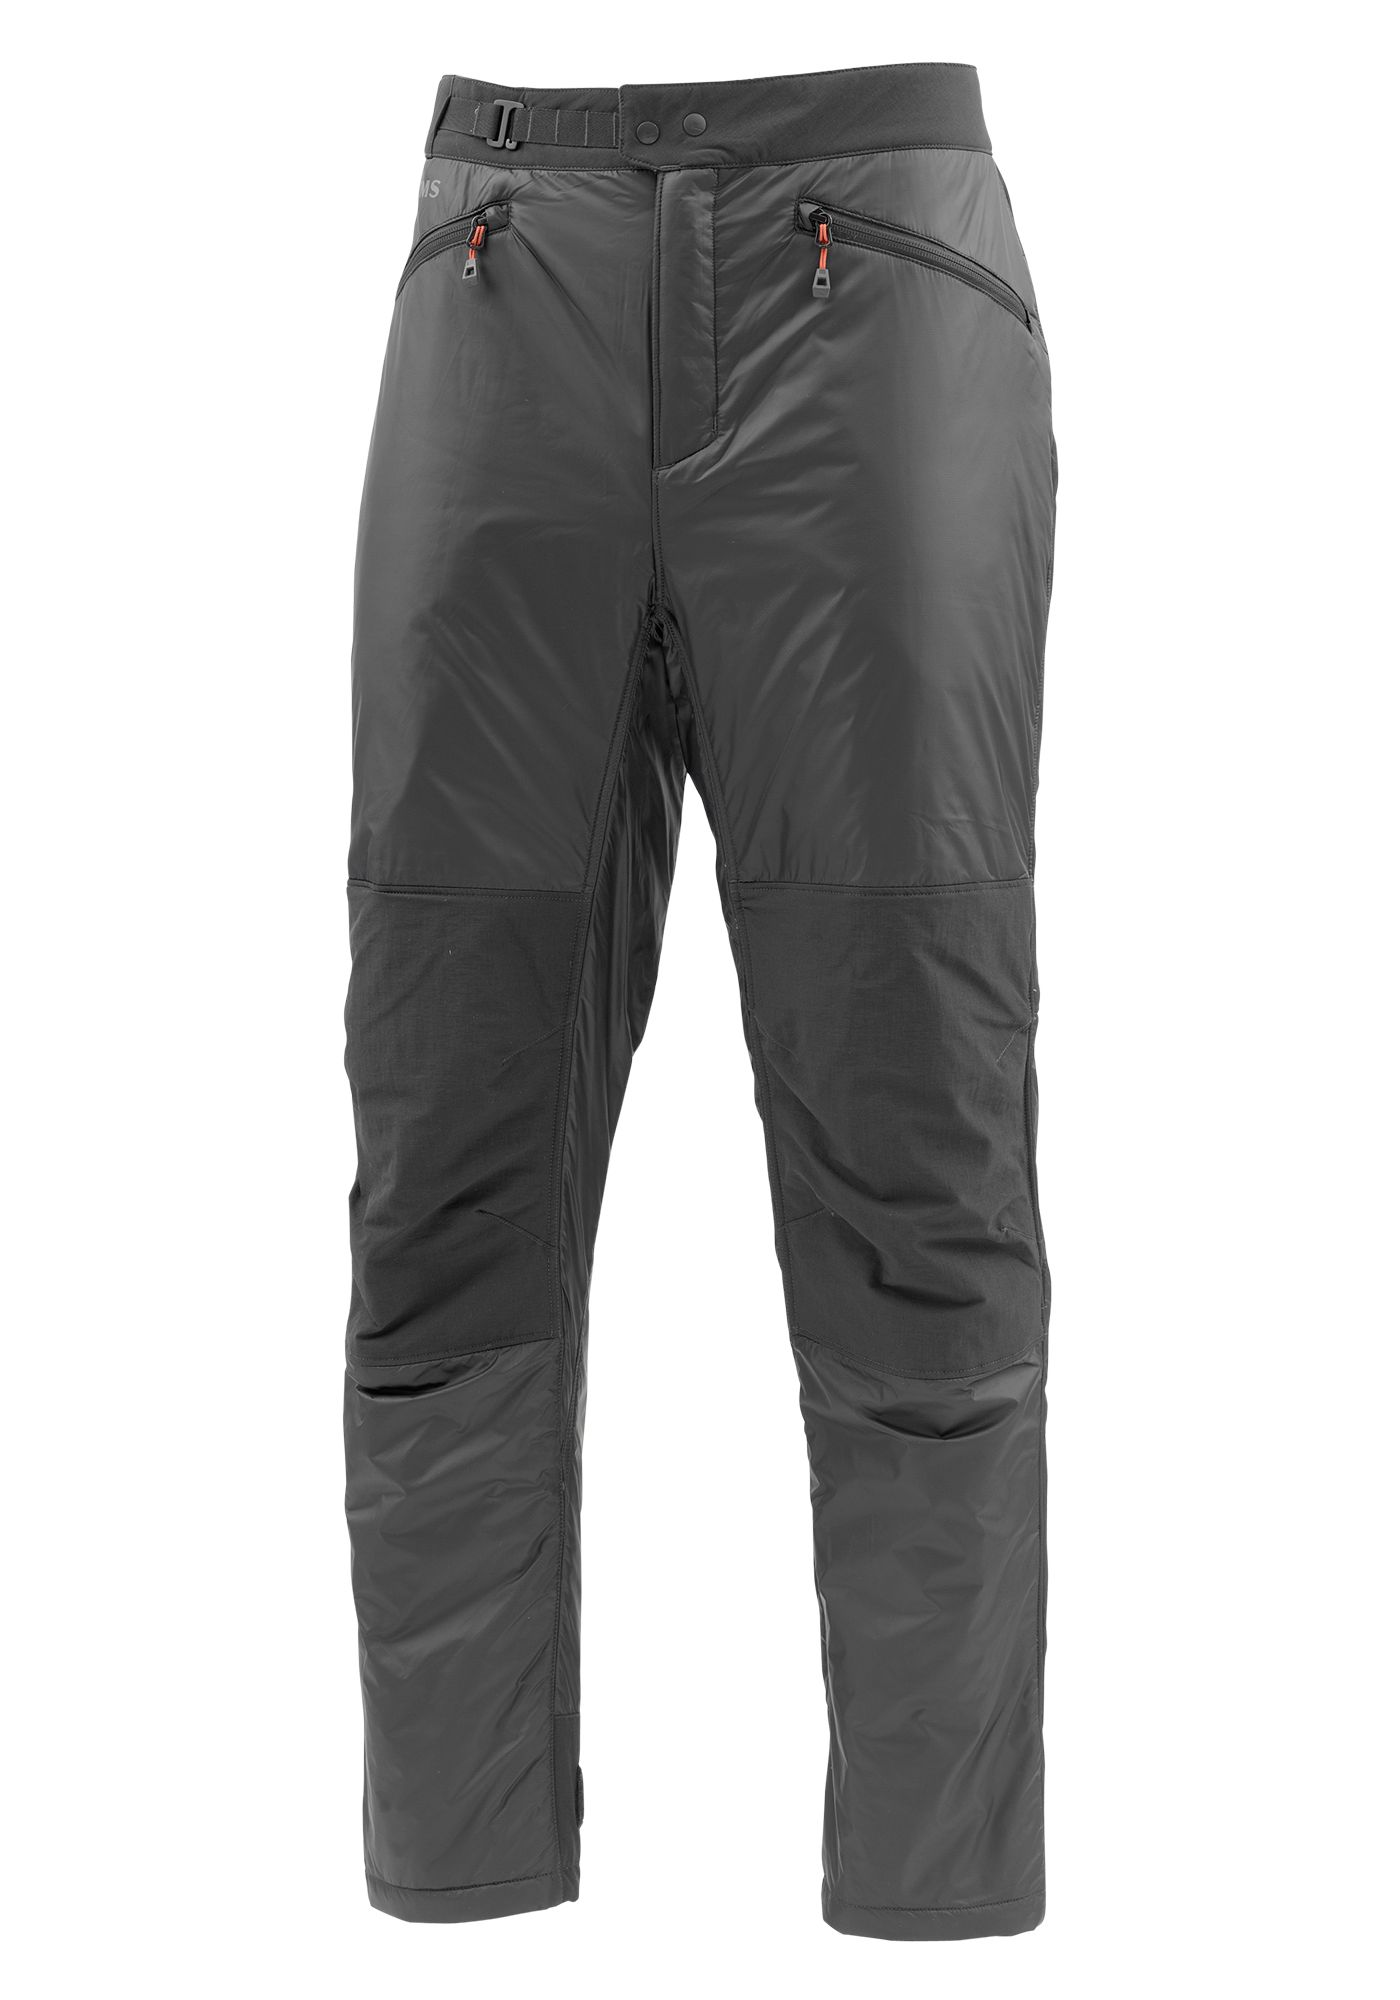 Simms Men's Insulated Pants